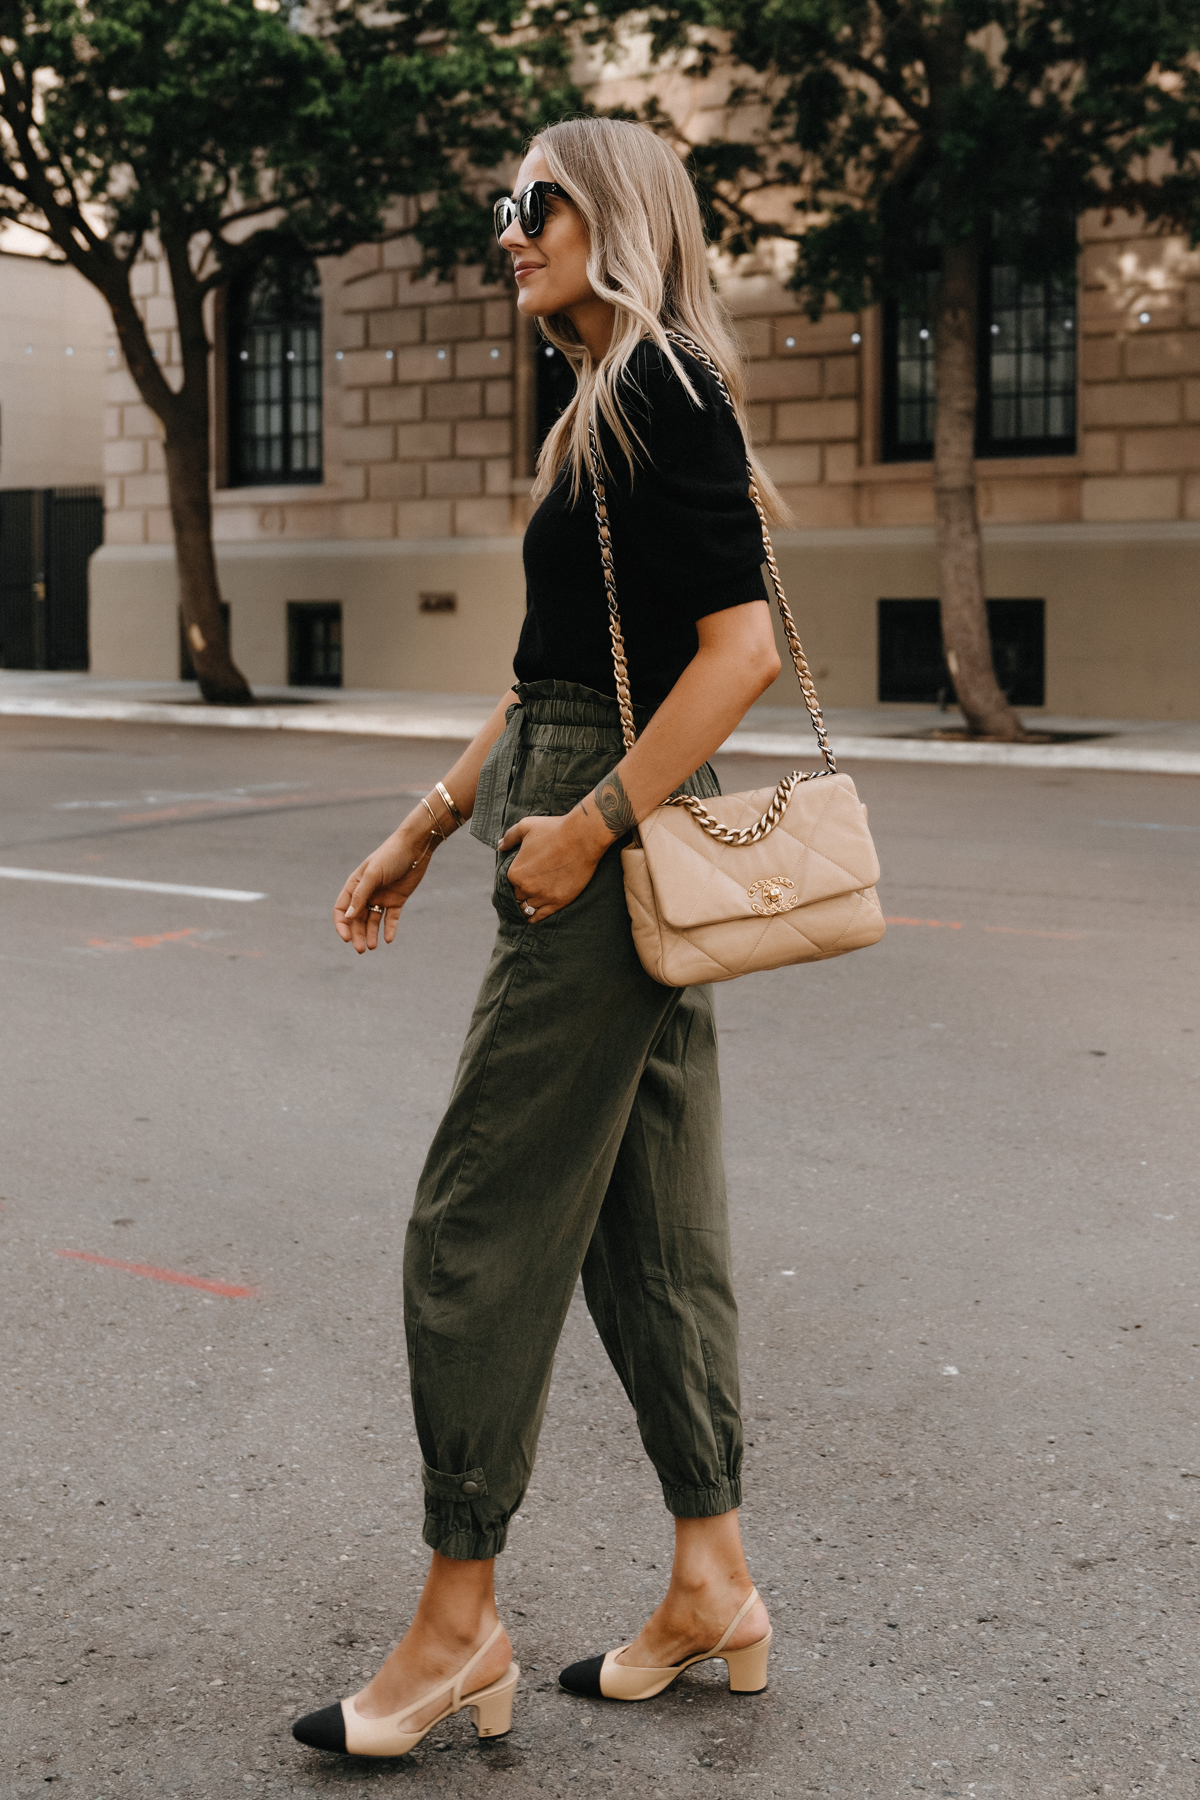 Fashion Jackson Wearing Black Puff Sleeve Sweater Olive Green Trousers Chanel 19 Beige Handbag Chanel Slingbacks non jeans work outfit for women